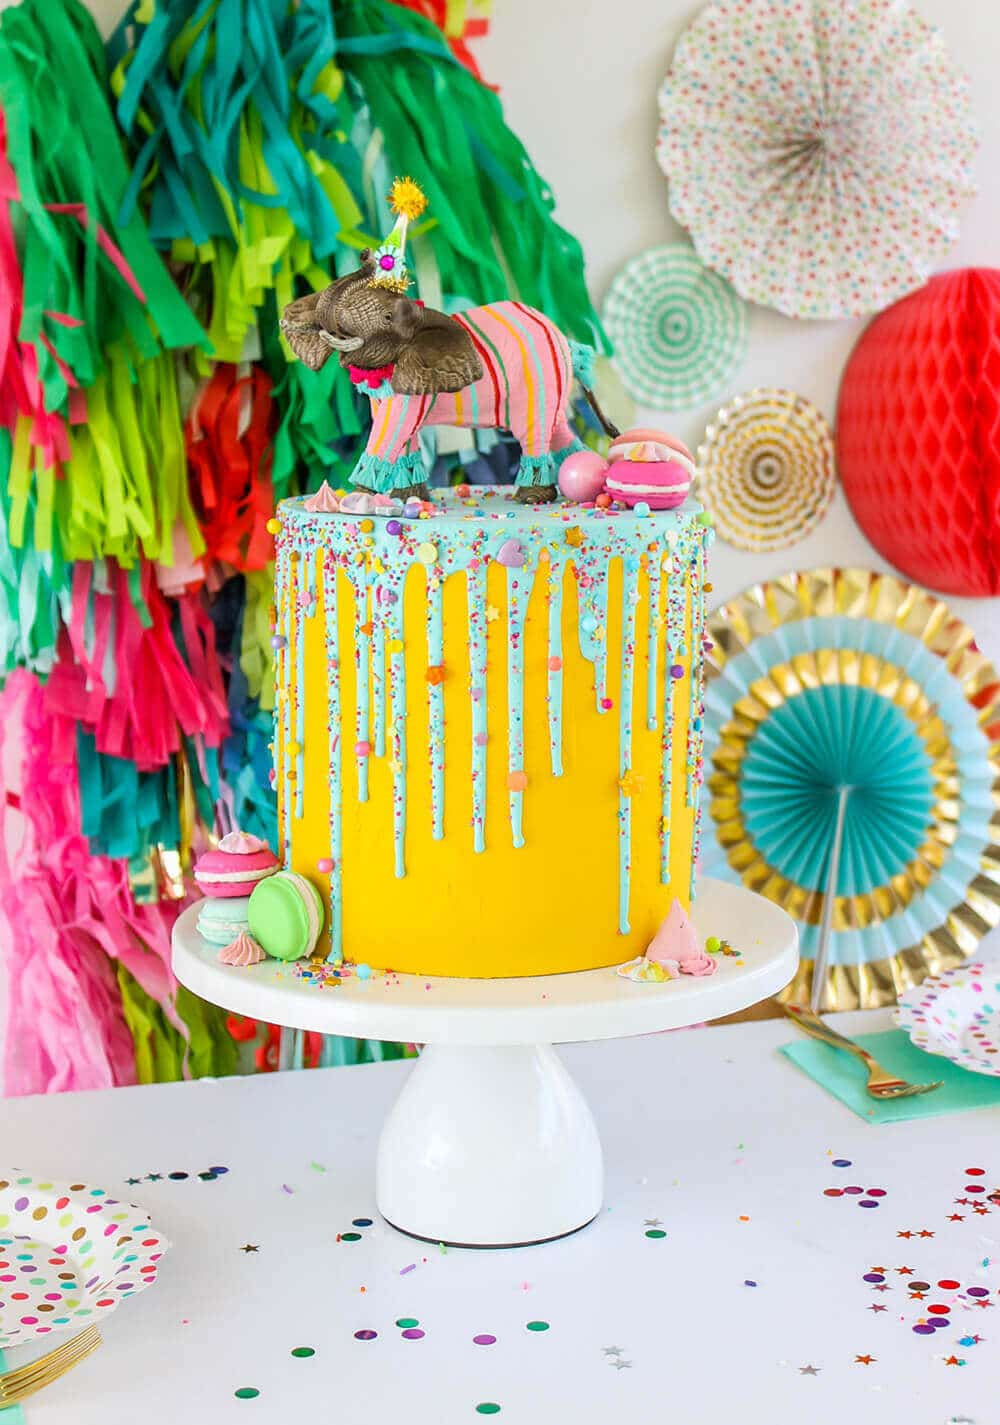 A faux cake is a great way to add fun without the sugar! Healthy Party Foods for Kids